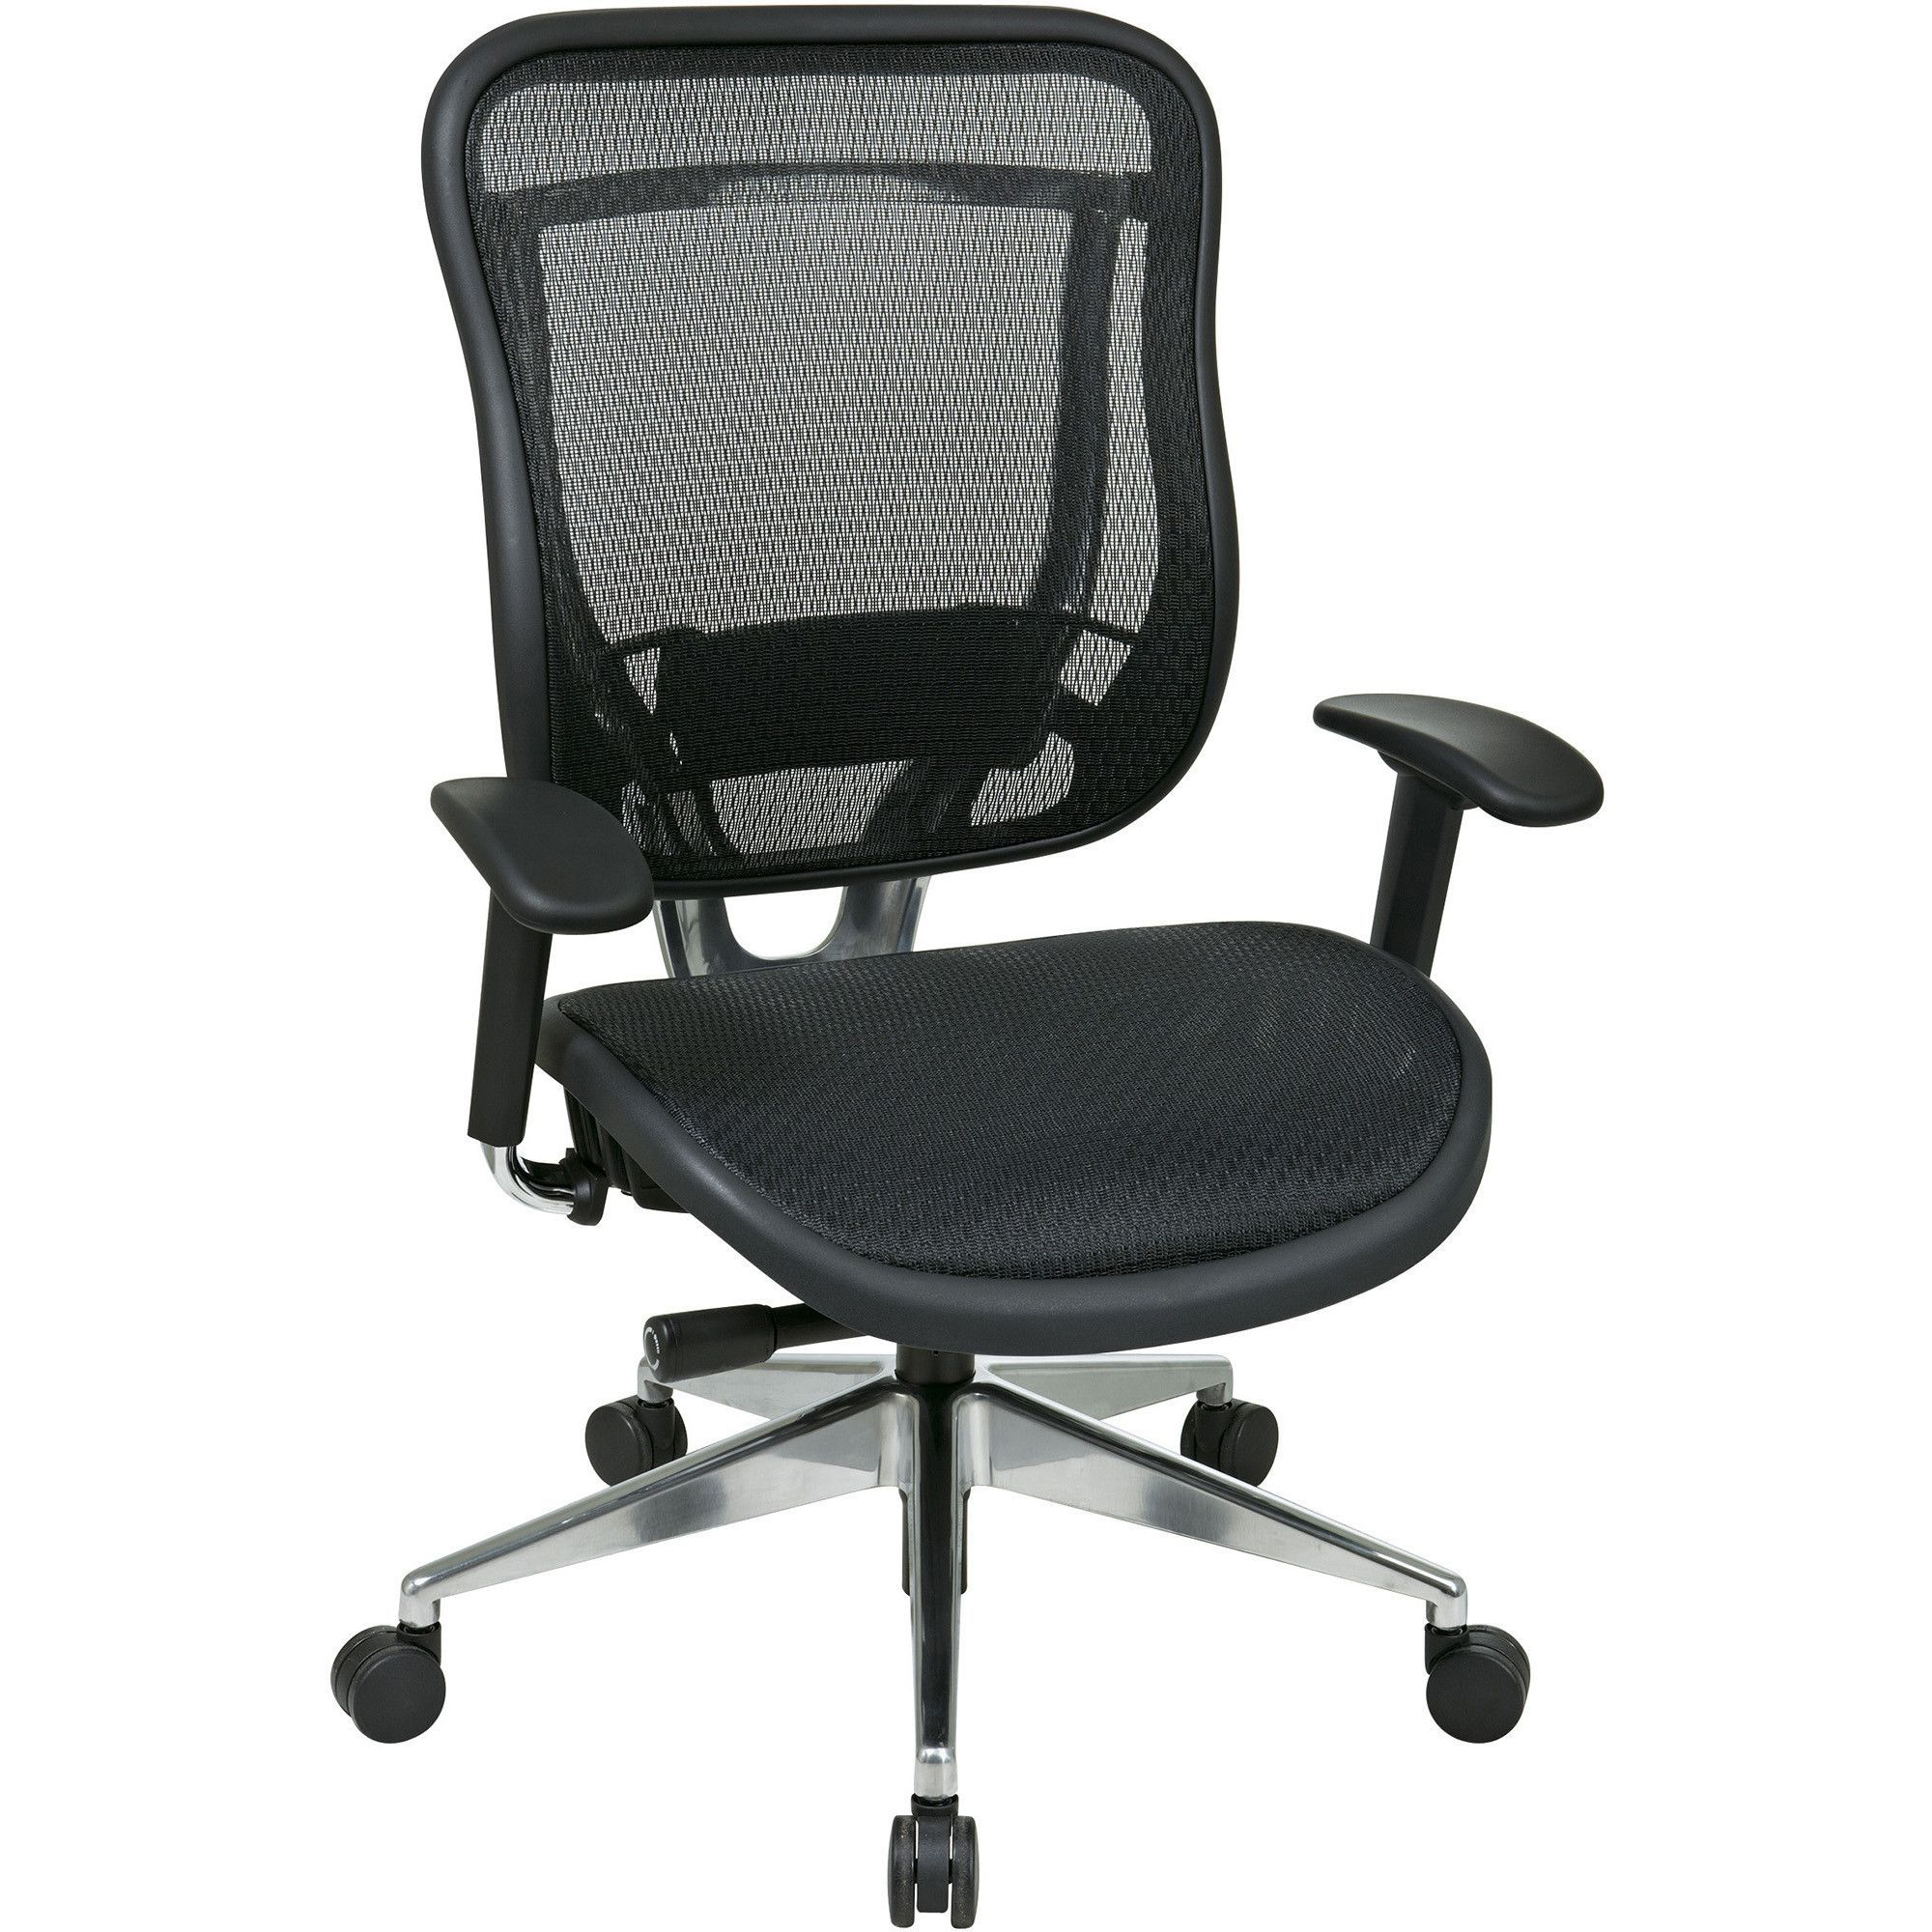 Executive High-Back Chair with Breathable Mesh Back & Seat, Black